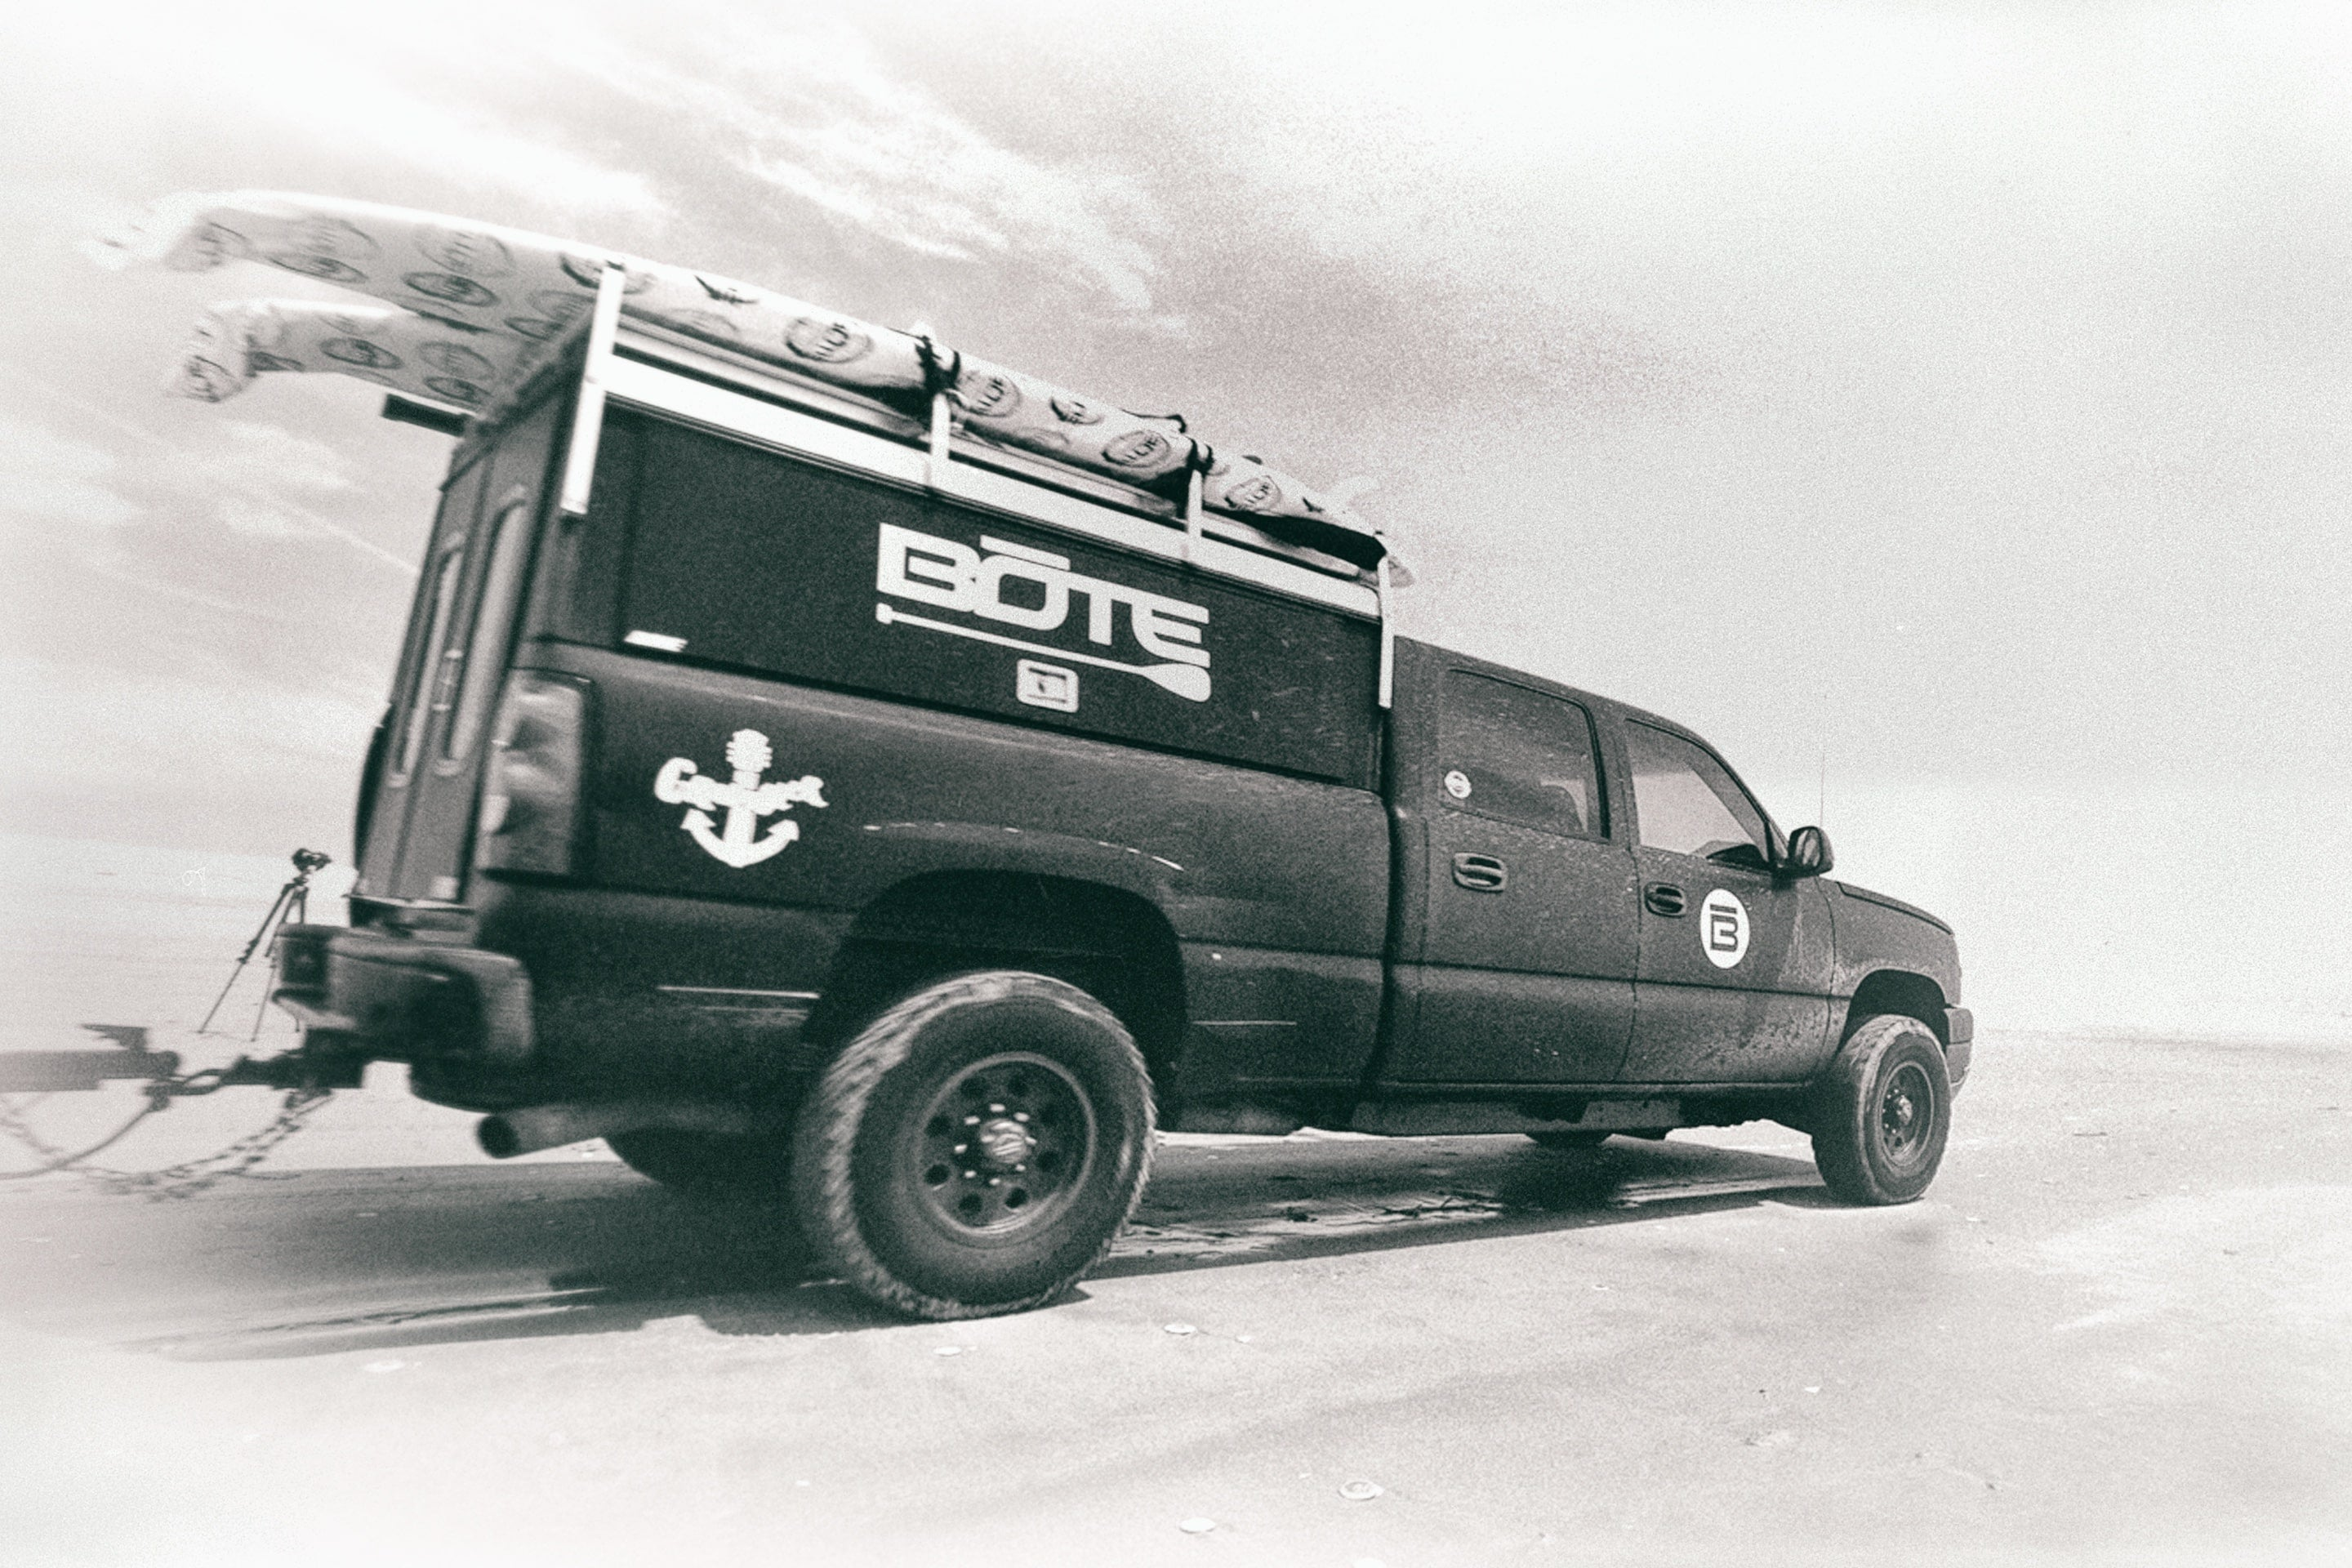 BOTE board Truck traveling across the country